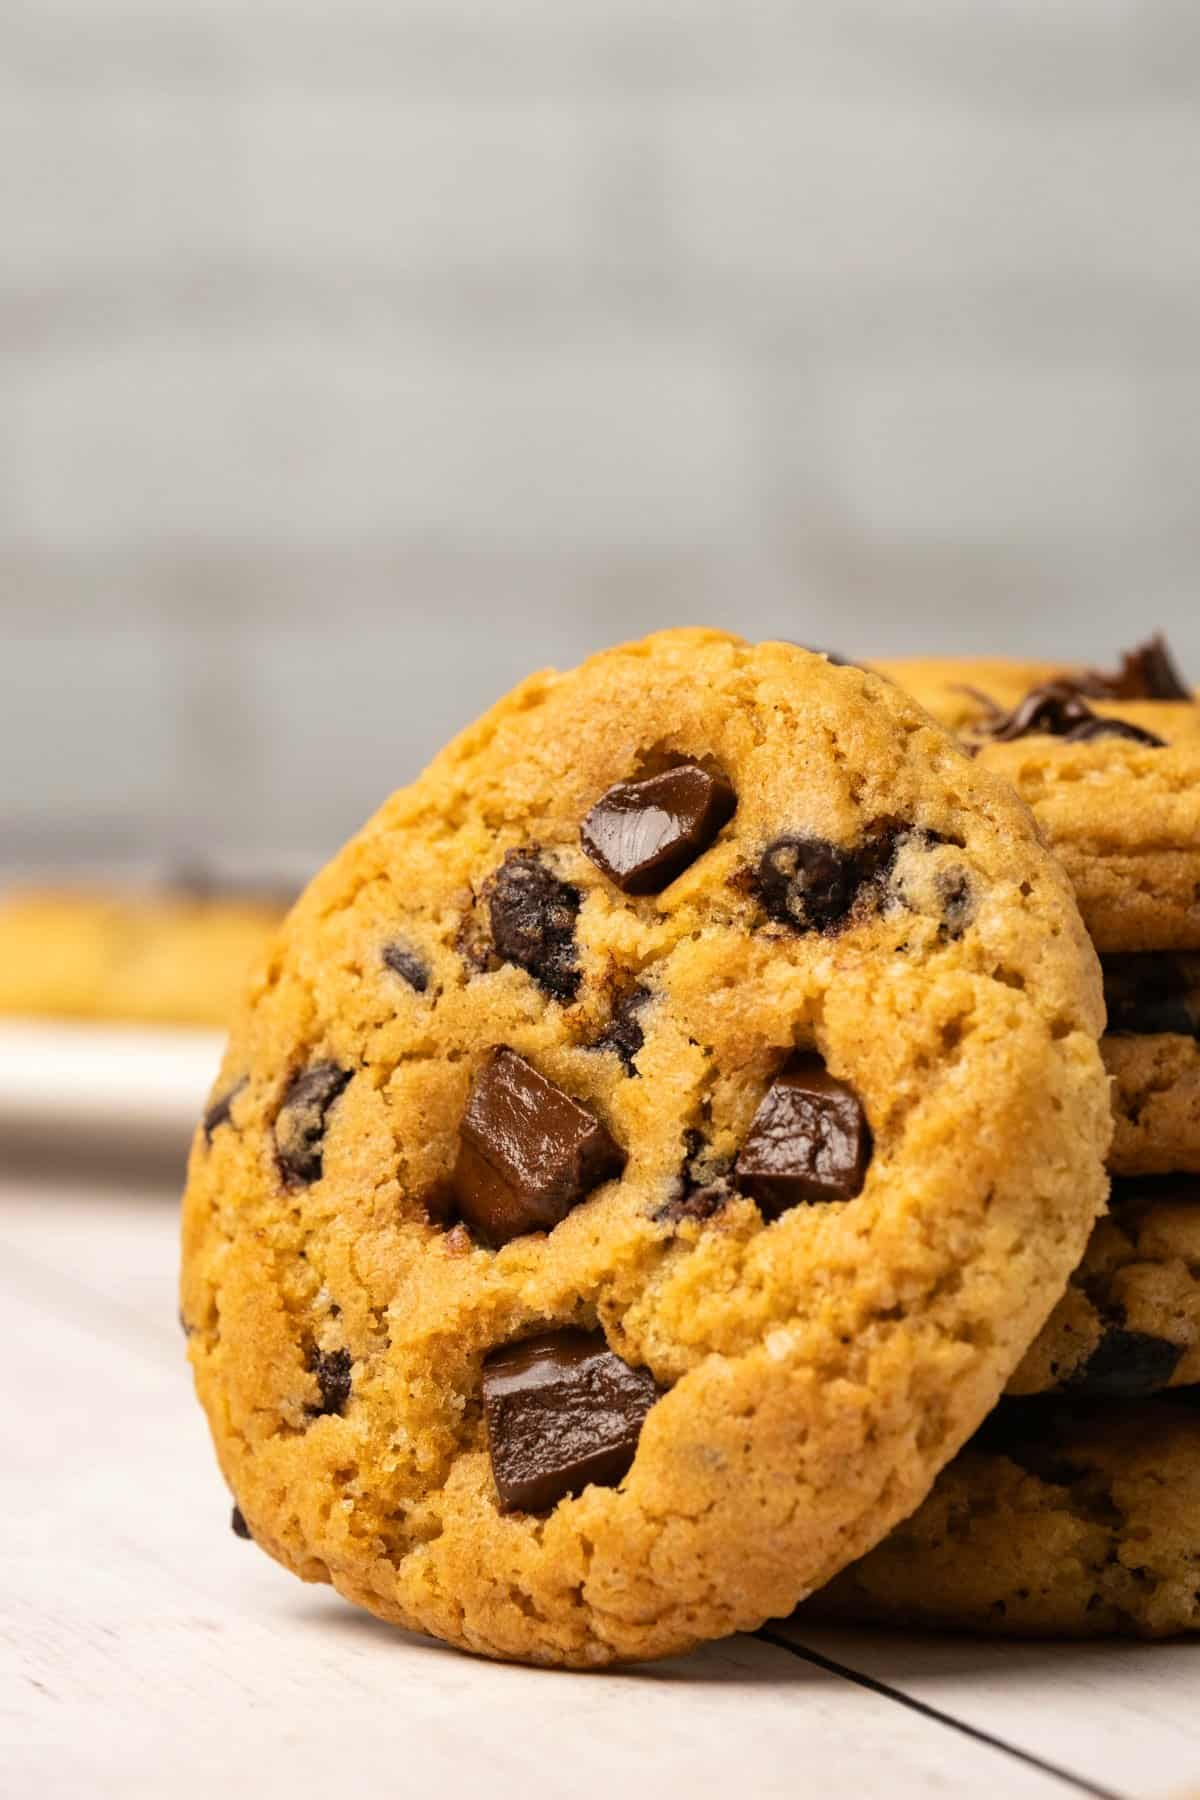 Chocolate chip cookie on a white background.